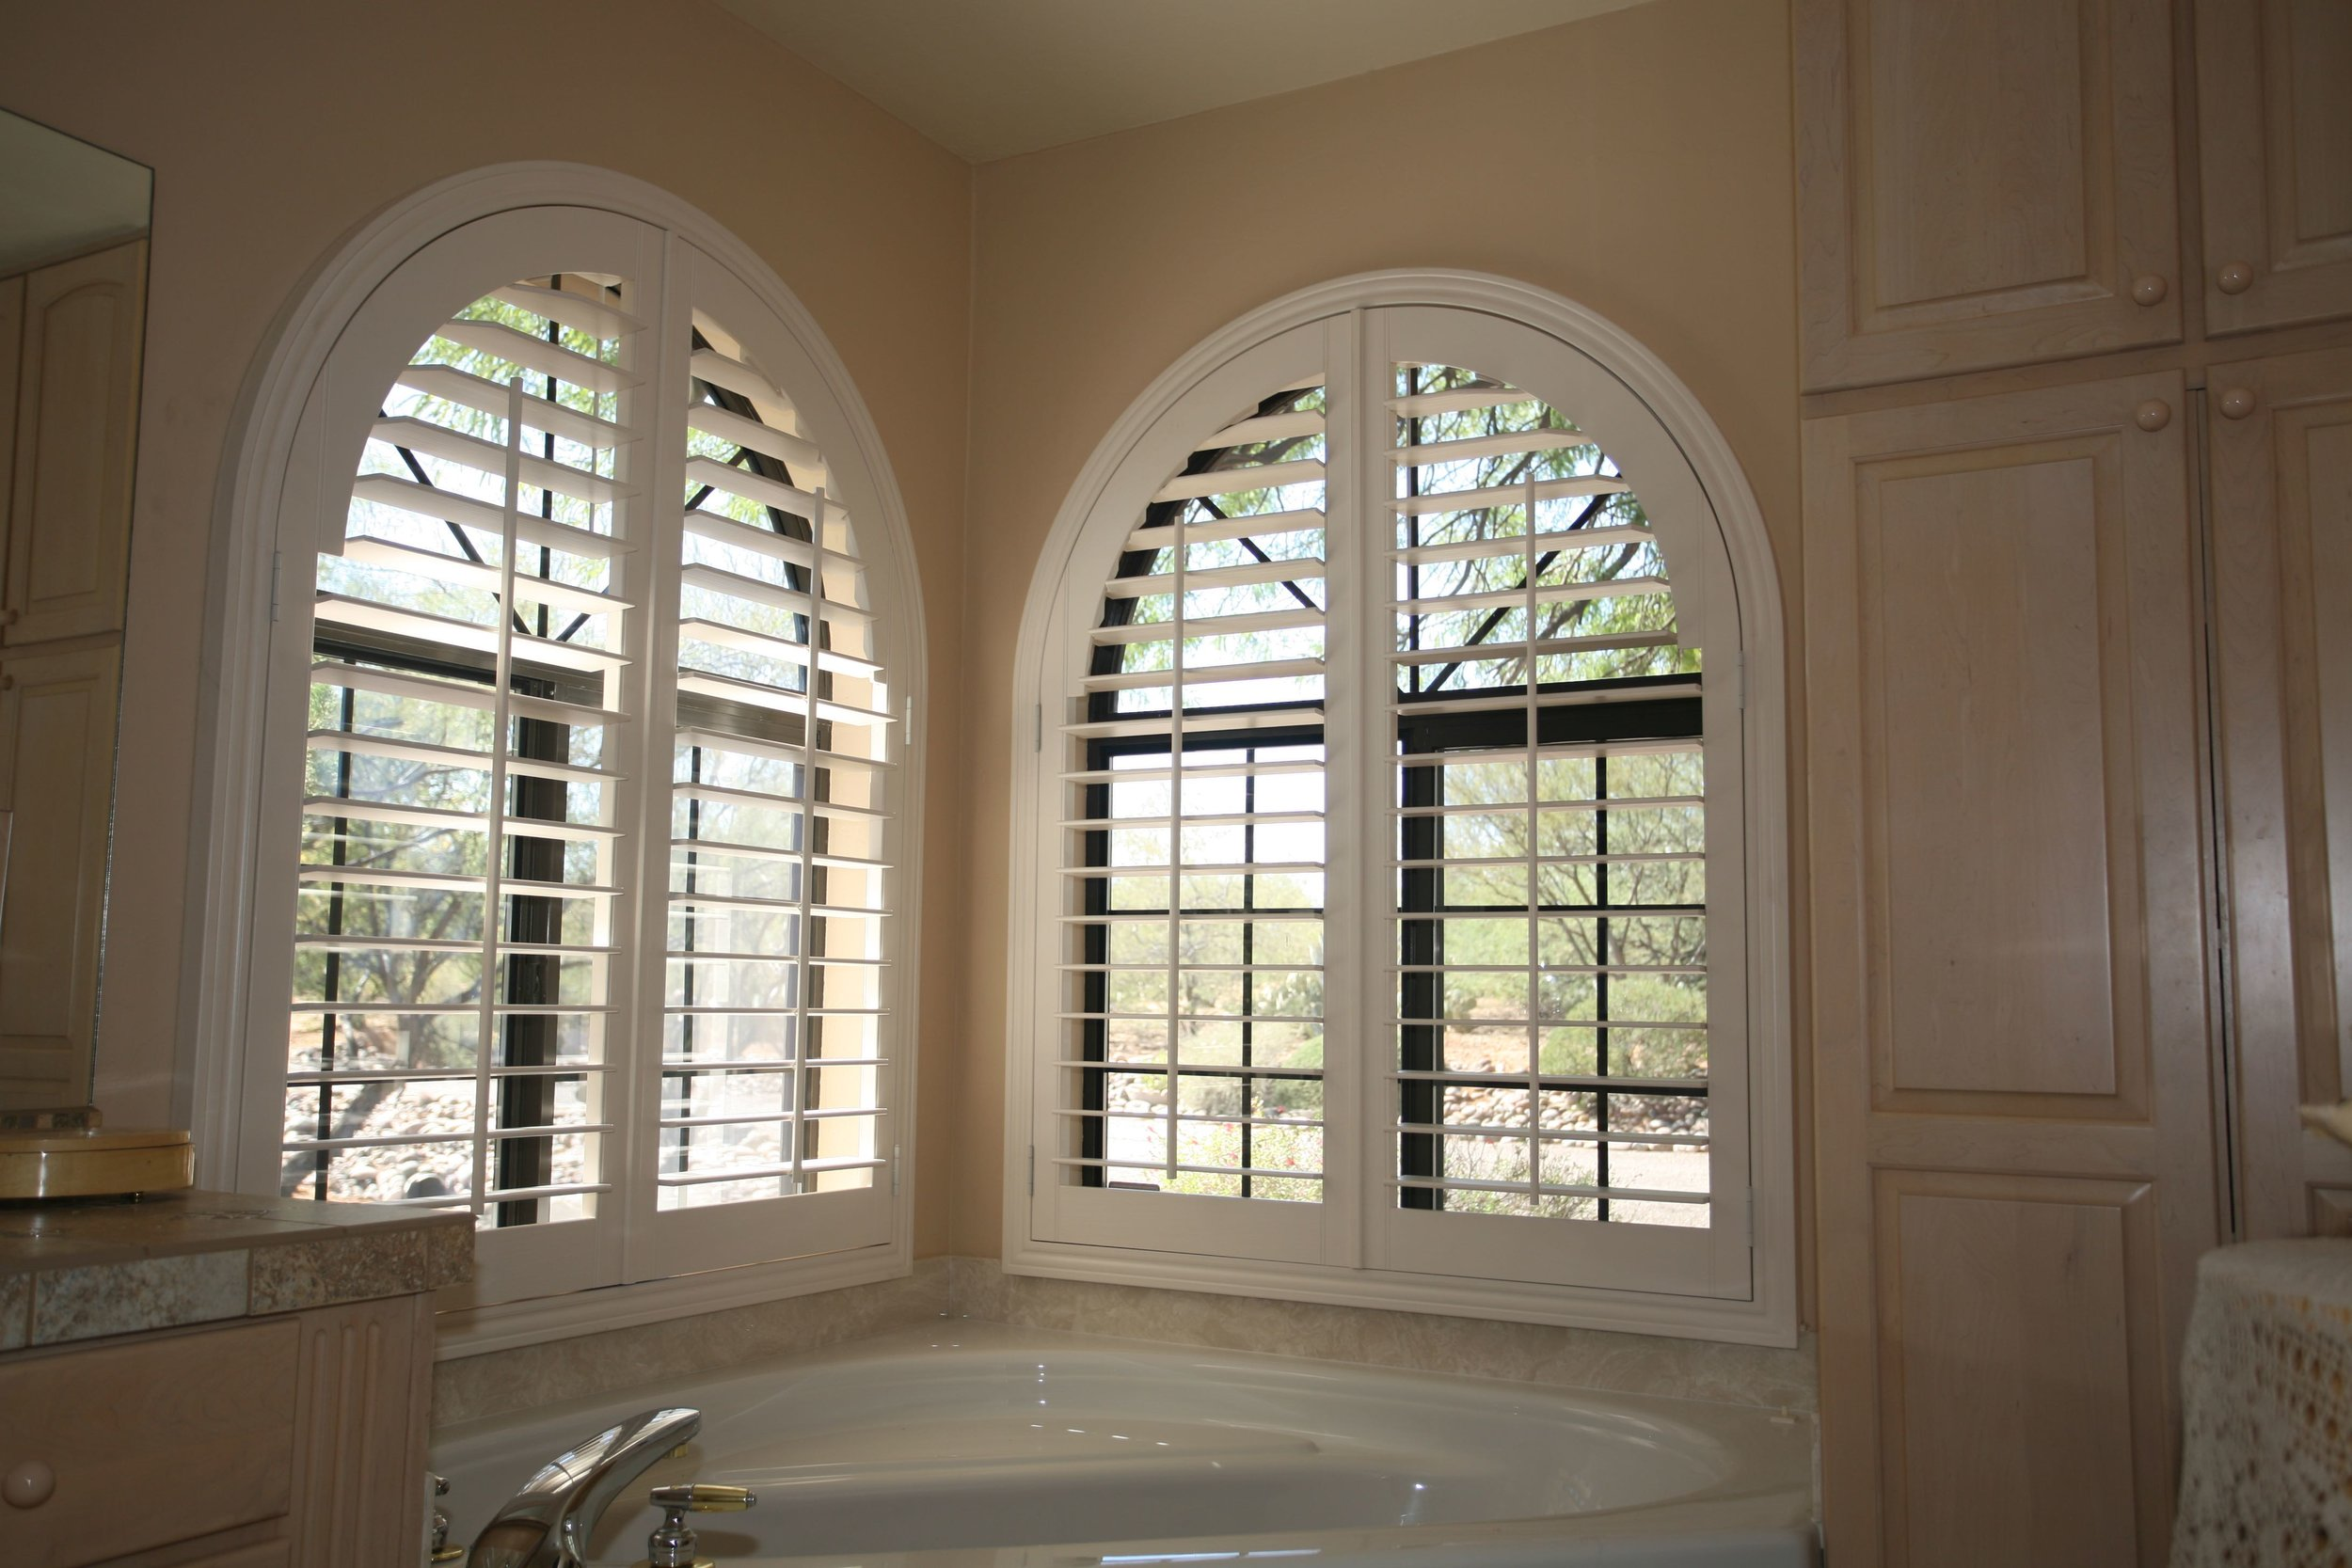 These arched window coverings are fully louvered for fine-tuned light control.